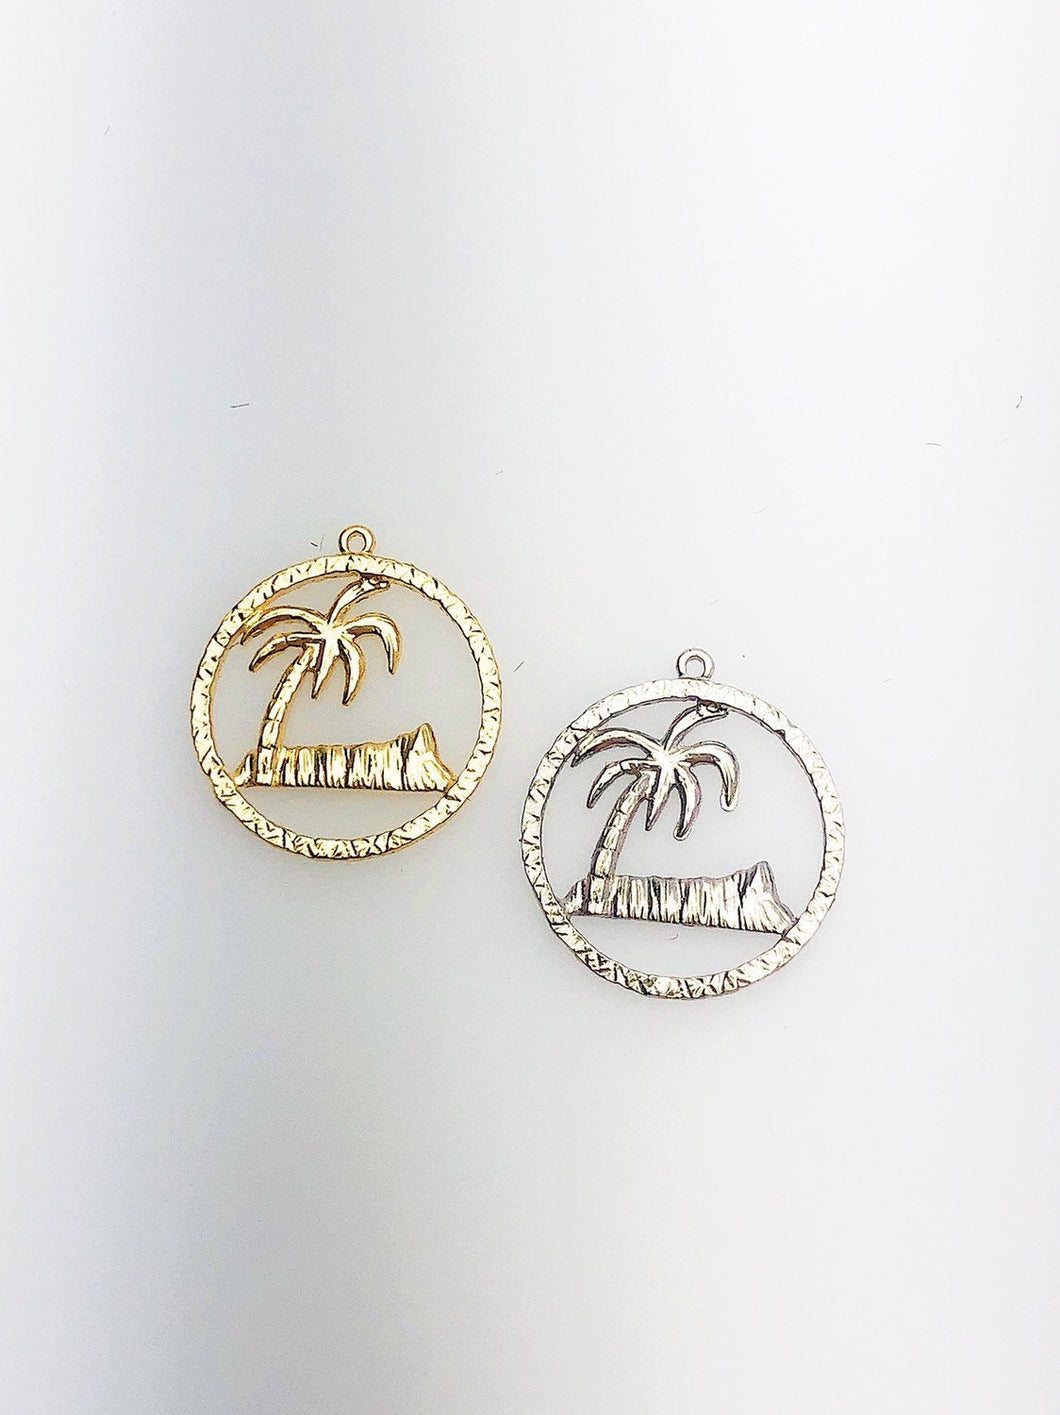 14K Solid Gold Hawaii Diamond Head Palm Tree Charm w/ Ring, 15.5mm, Made in USA (L-26)